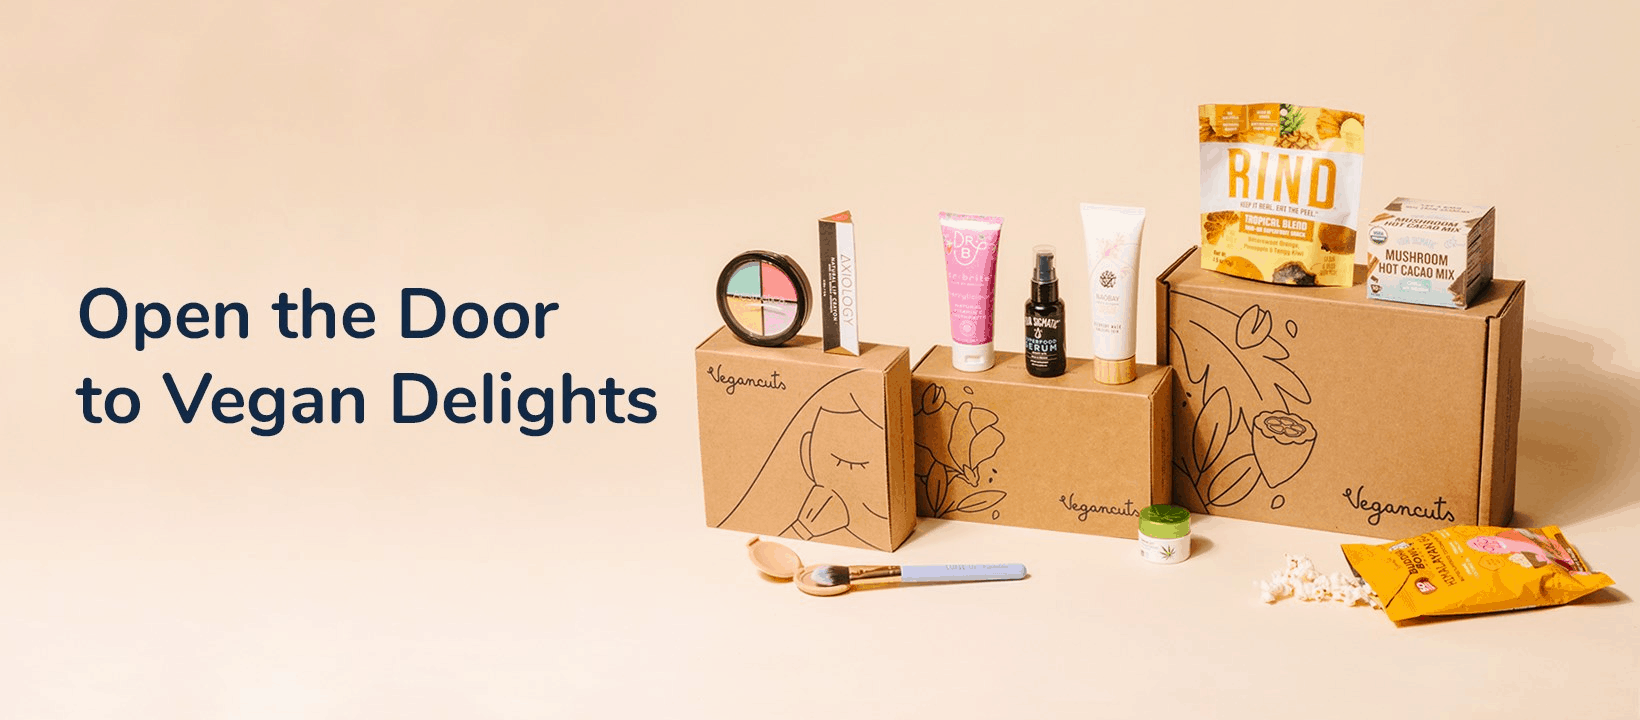 Vegancuts Allergen-Free Beauty and Snack Boxes Available Now!